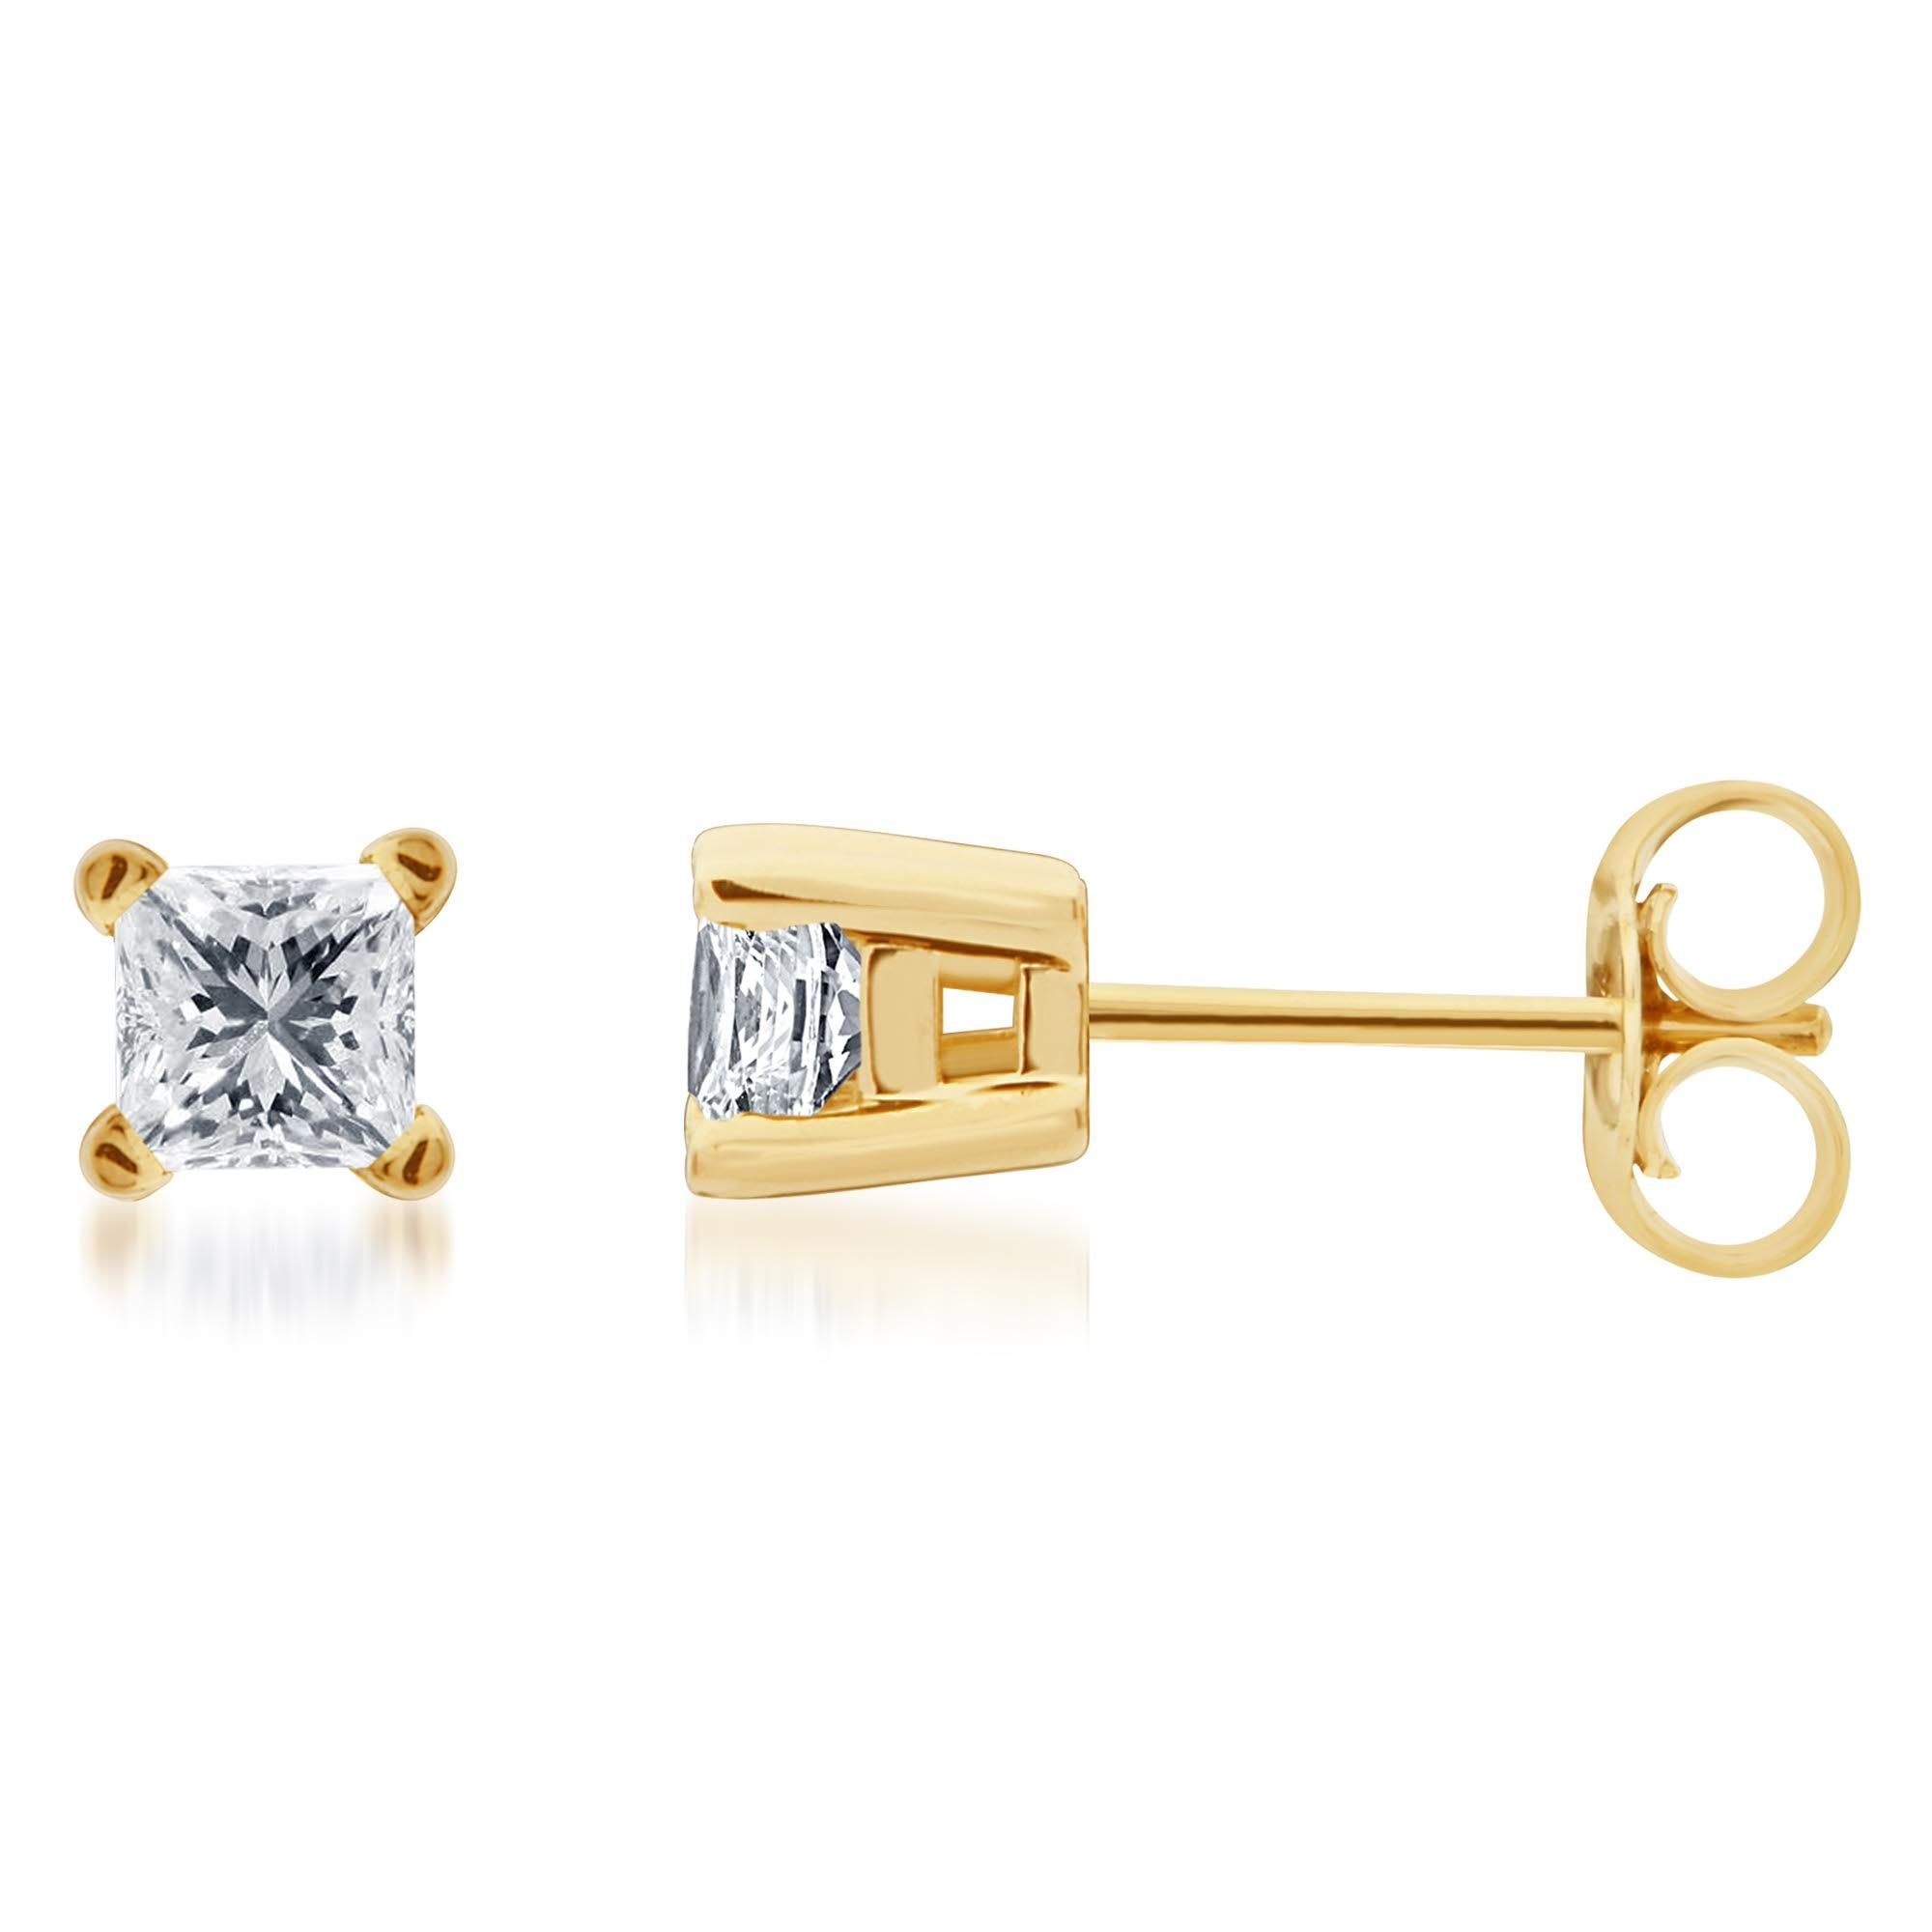 Details about  /1.0 Princess Solitaire Classic Stud Simulated Turquoise Earrings 14k Yellow Gold